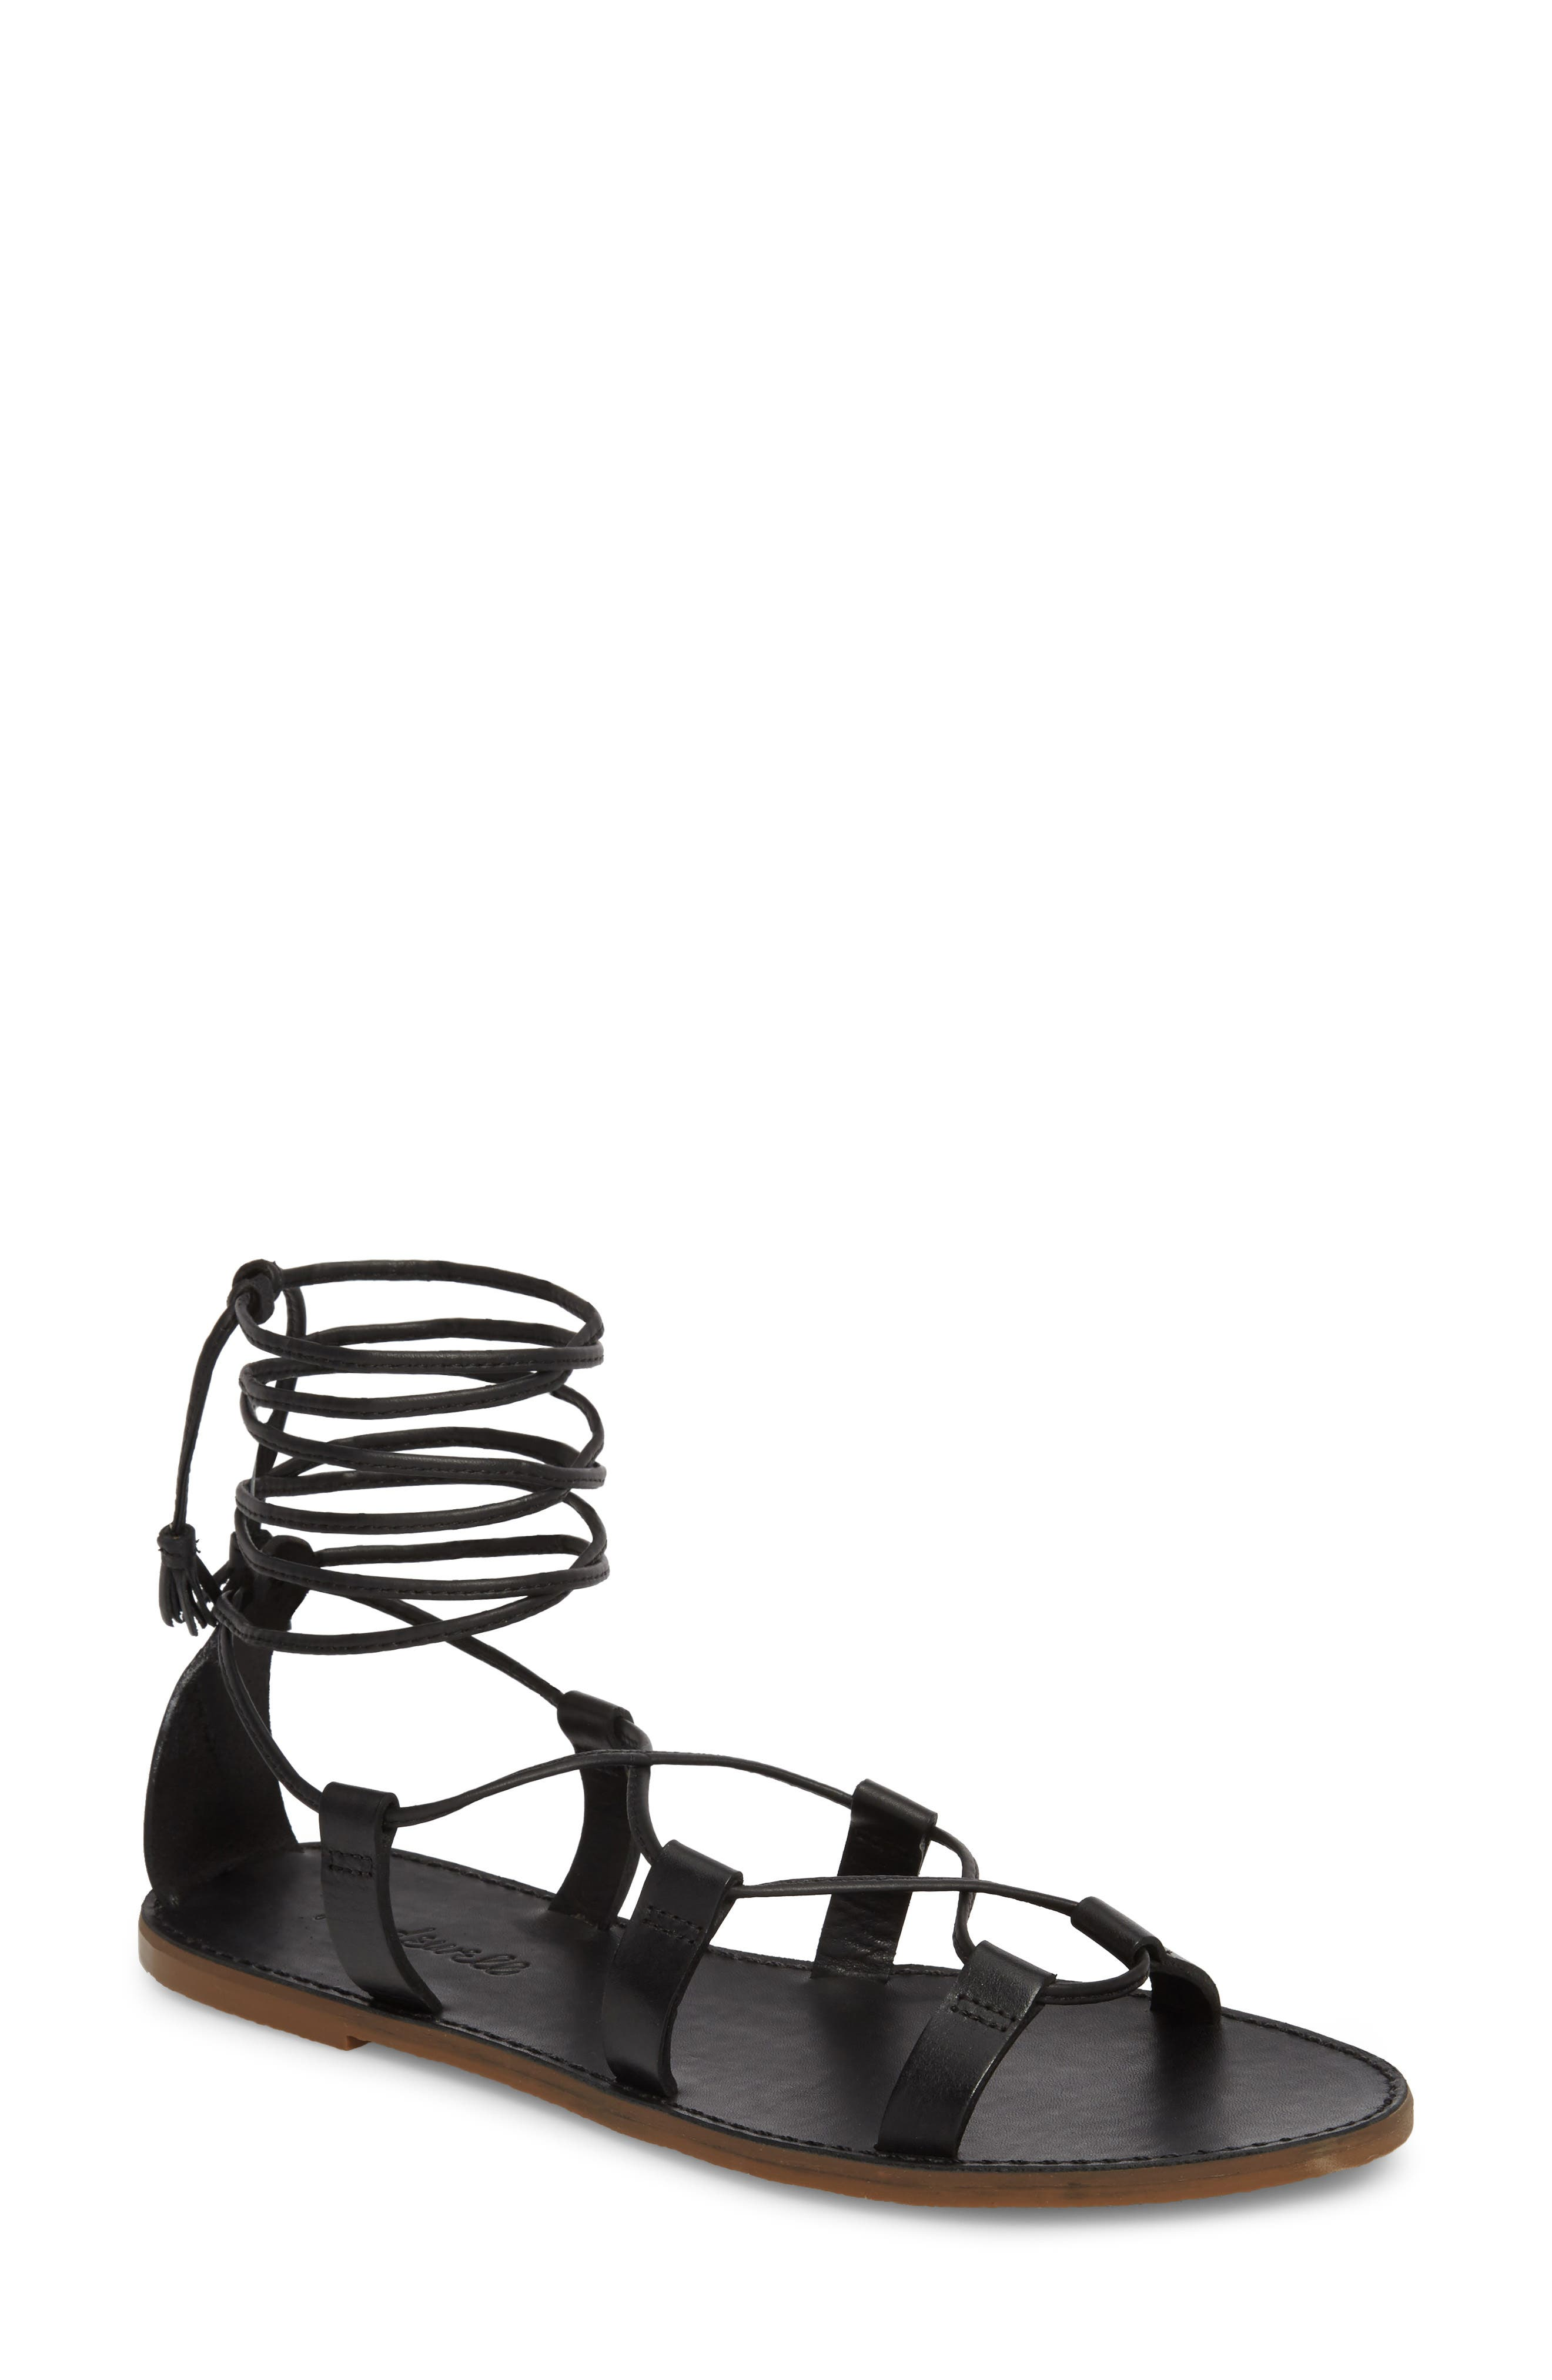 MADEWELL, The Boardwalk Lace-Up Sandal, Main thumbnail 1, color, 001